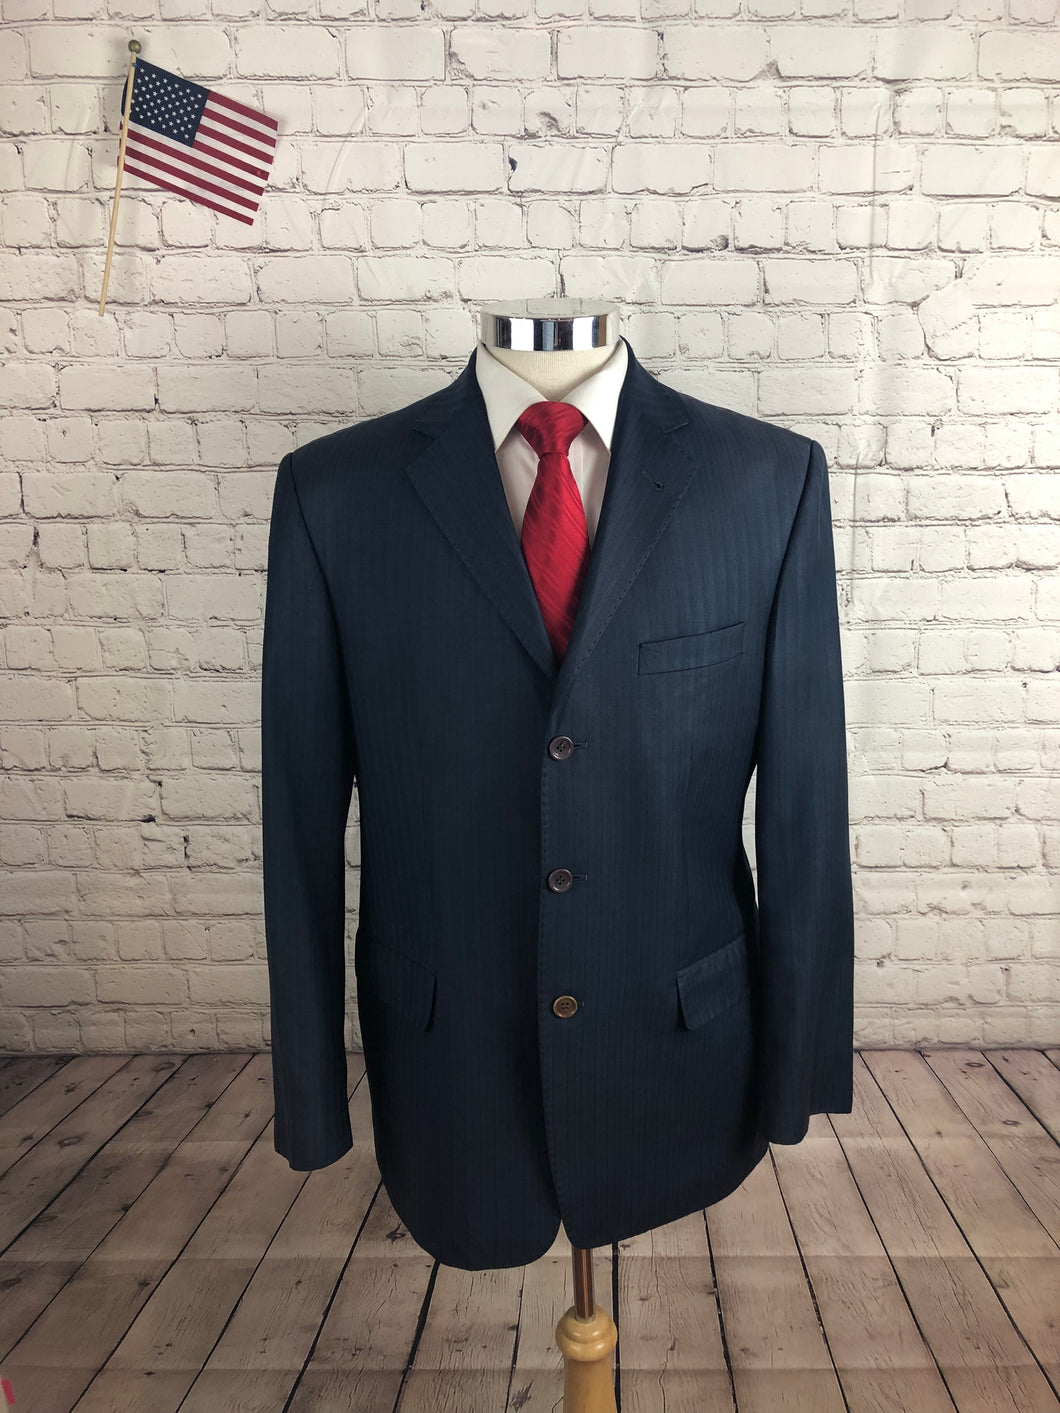 Frank Dalvin Men's Navy Stripe Blazer Sport Coat Suit Jacket Size 40R $495 - SUIT CHARITY OUTLET